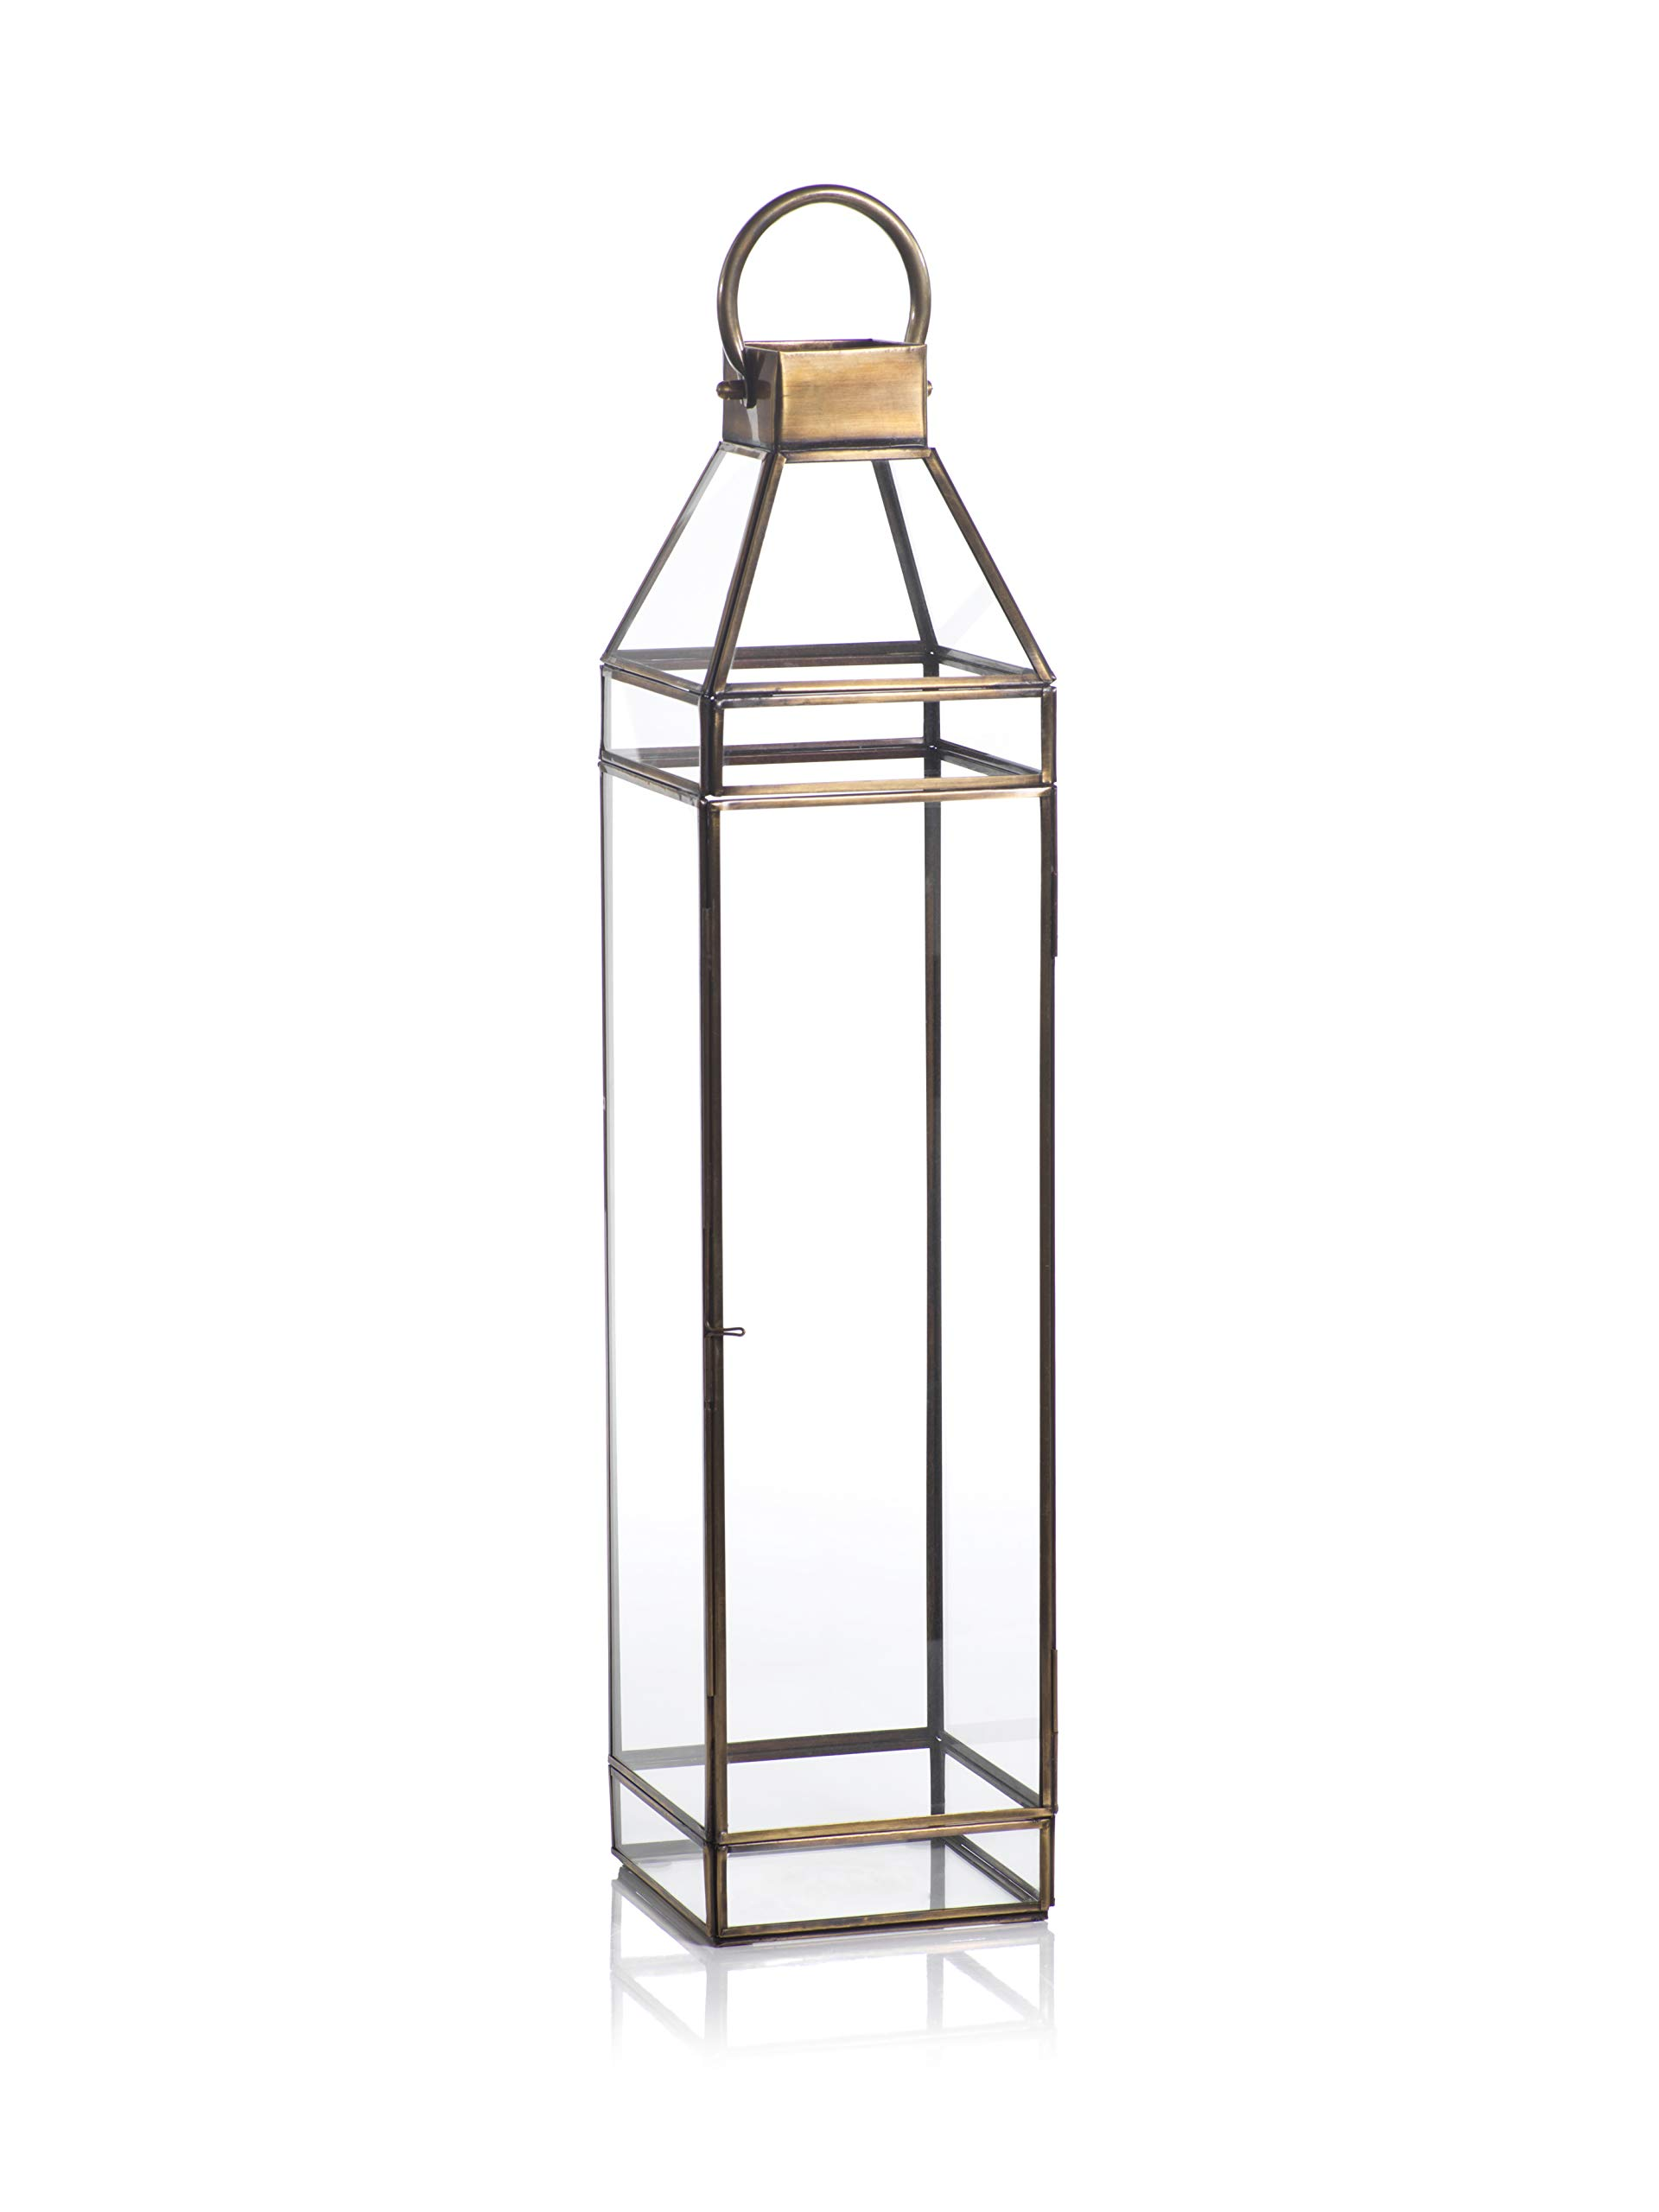 Zodax Martino 25'' Tall Antique Brass Glass Decorative Candle Lantern, XL, Gold